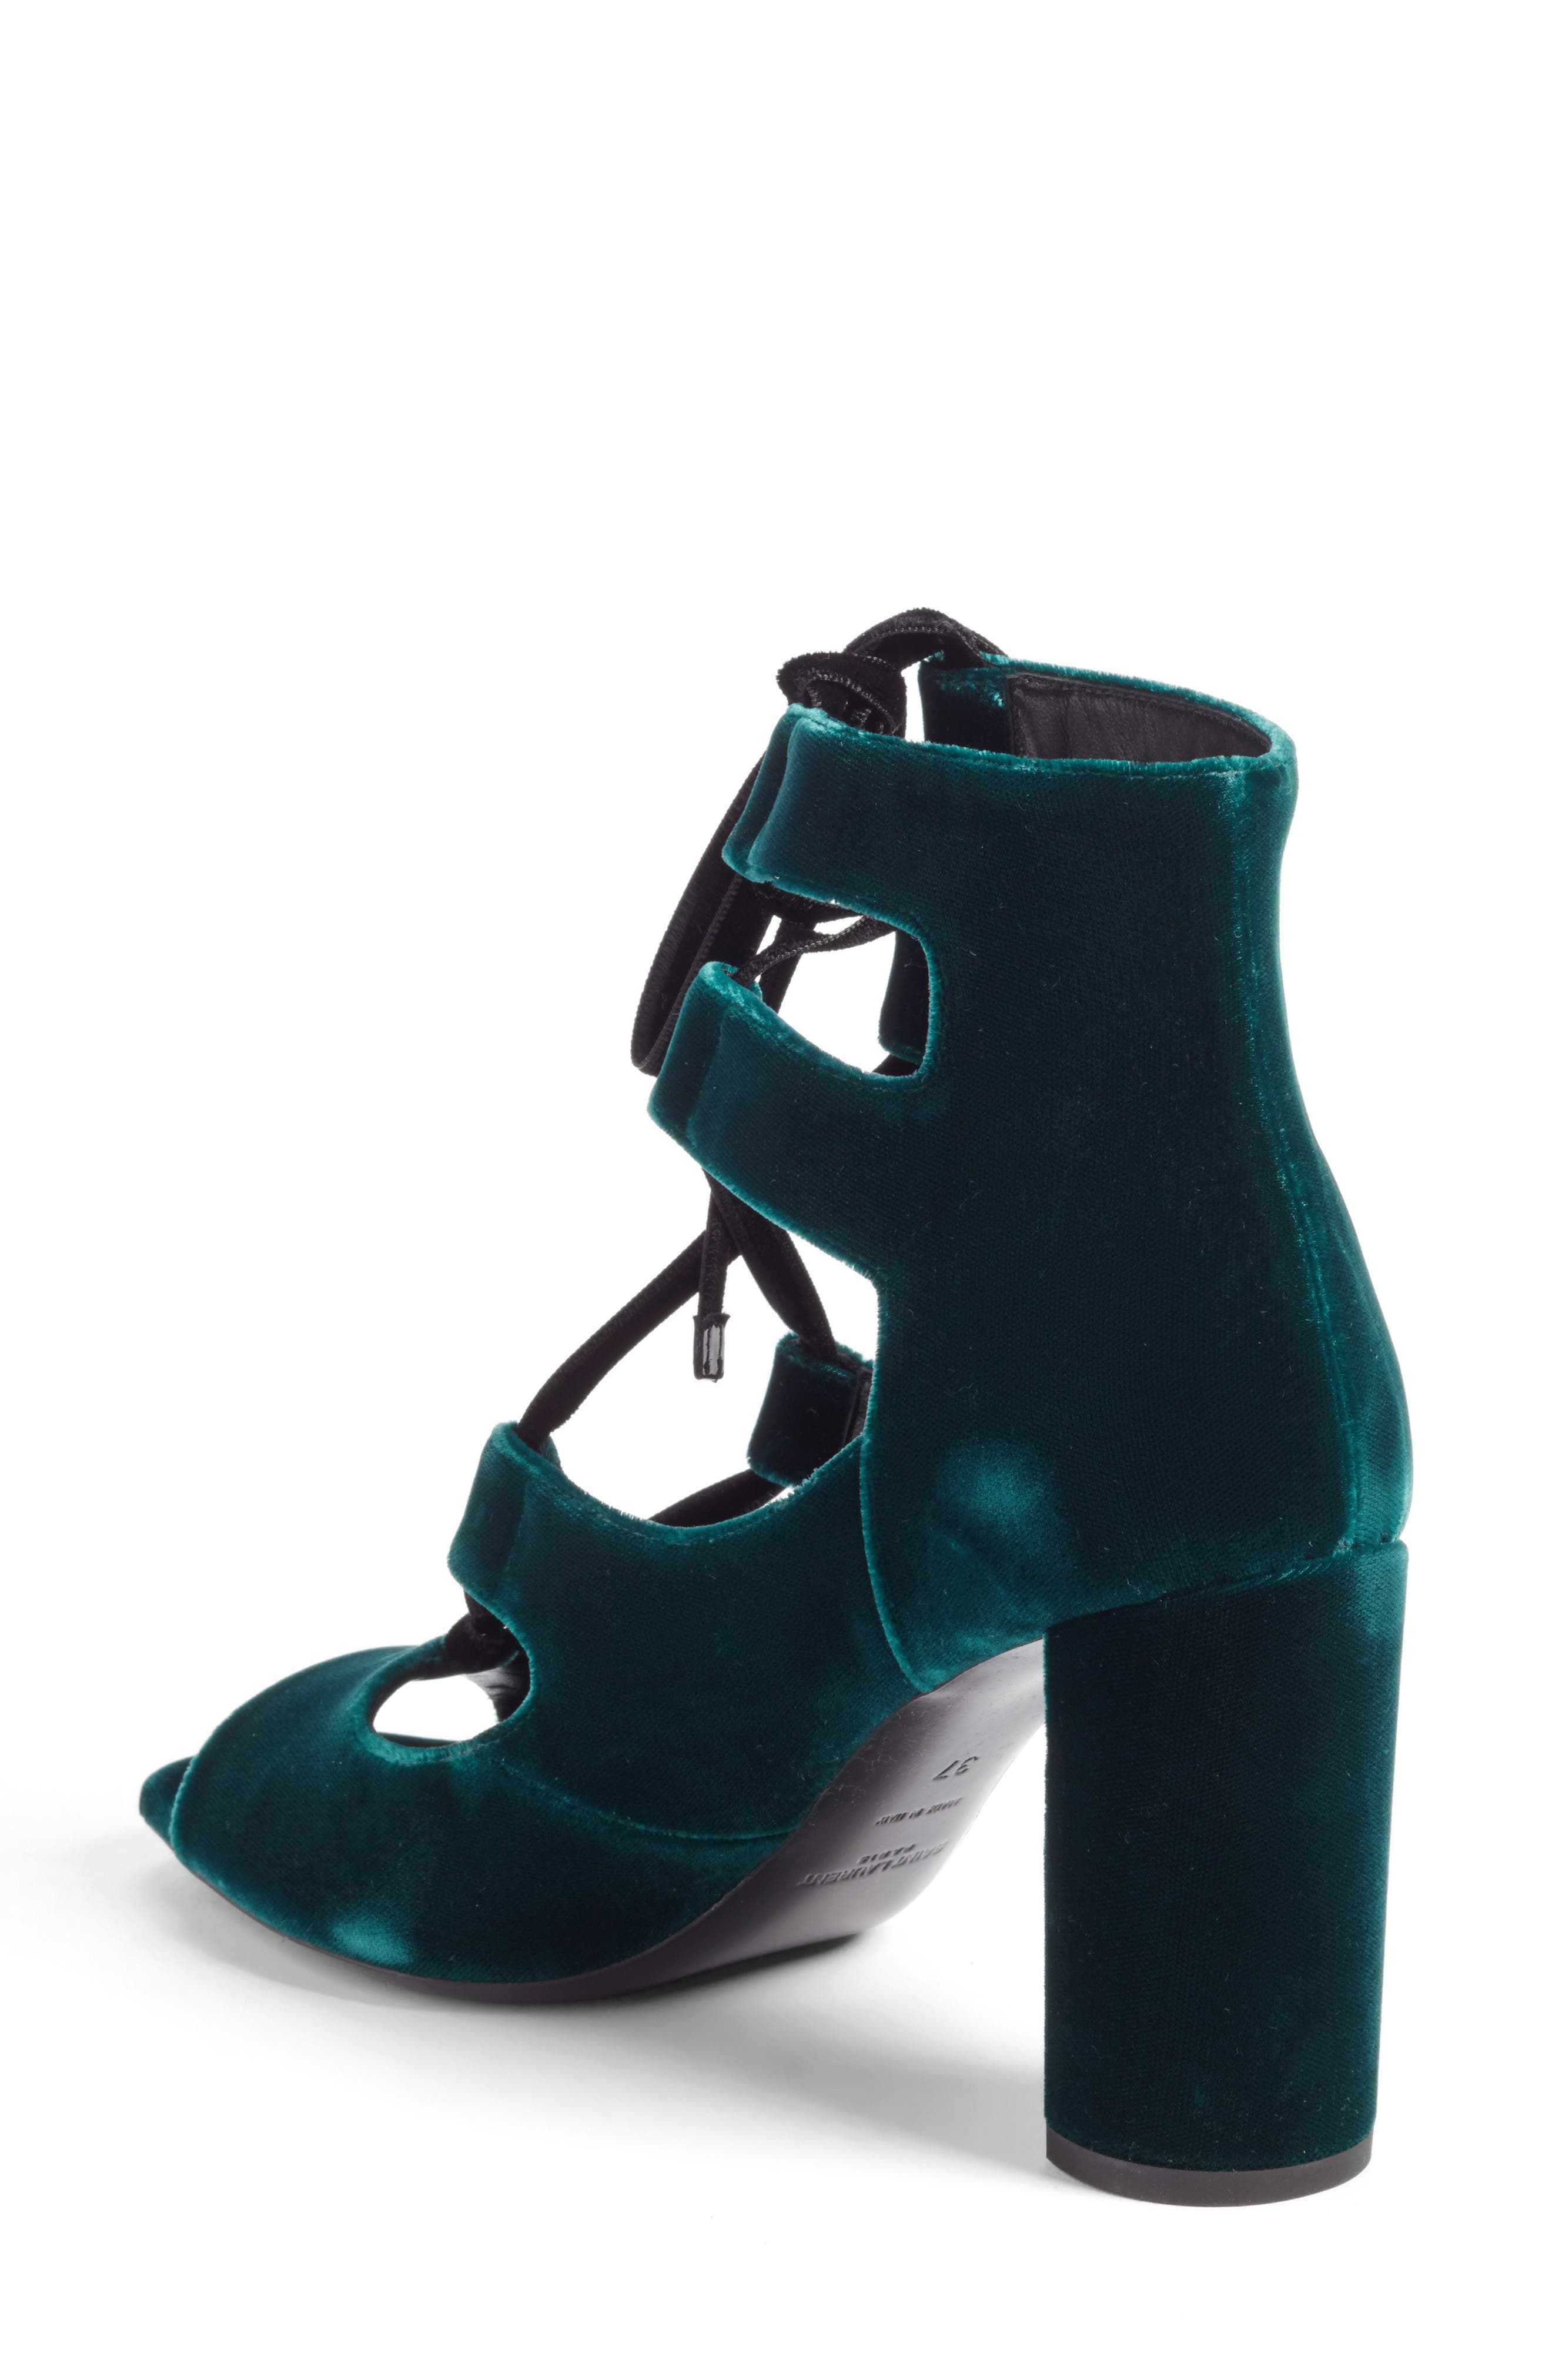 Loulou Ghillie Sandal,                             Alternate thumbnail 2, color,                             Teal